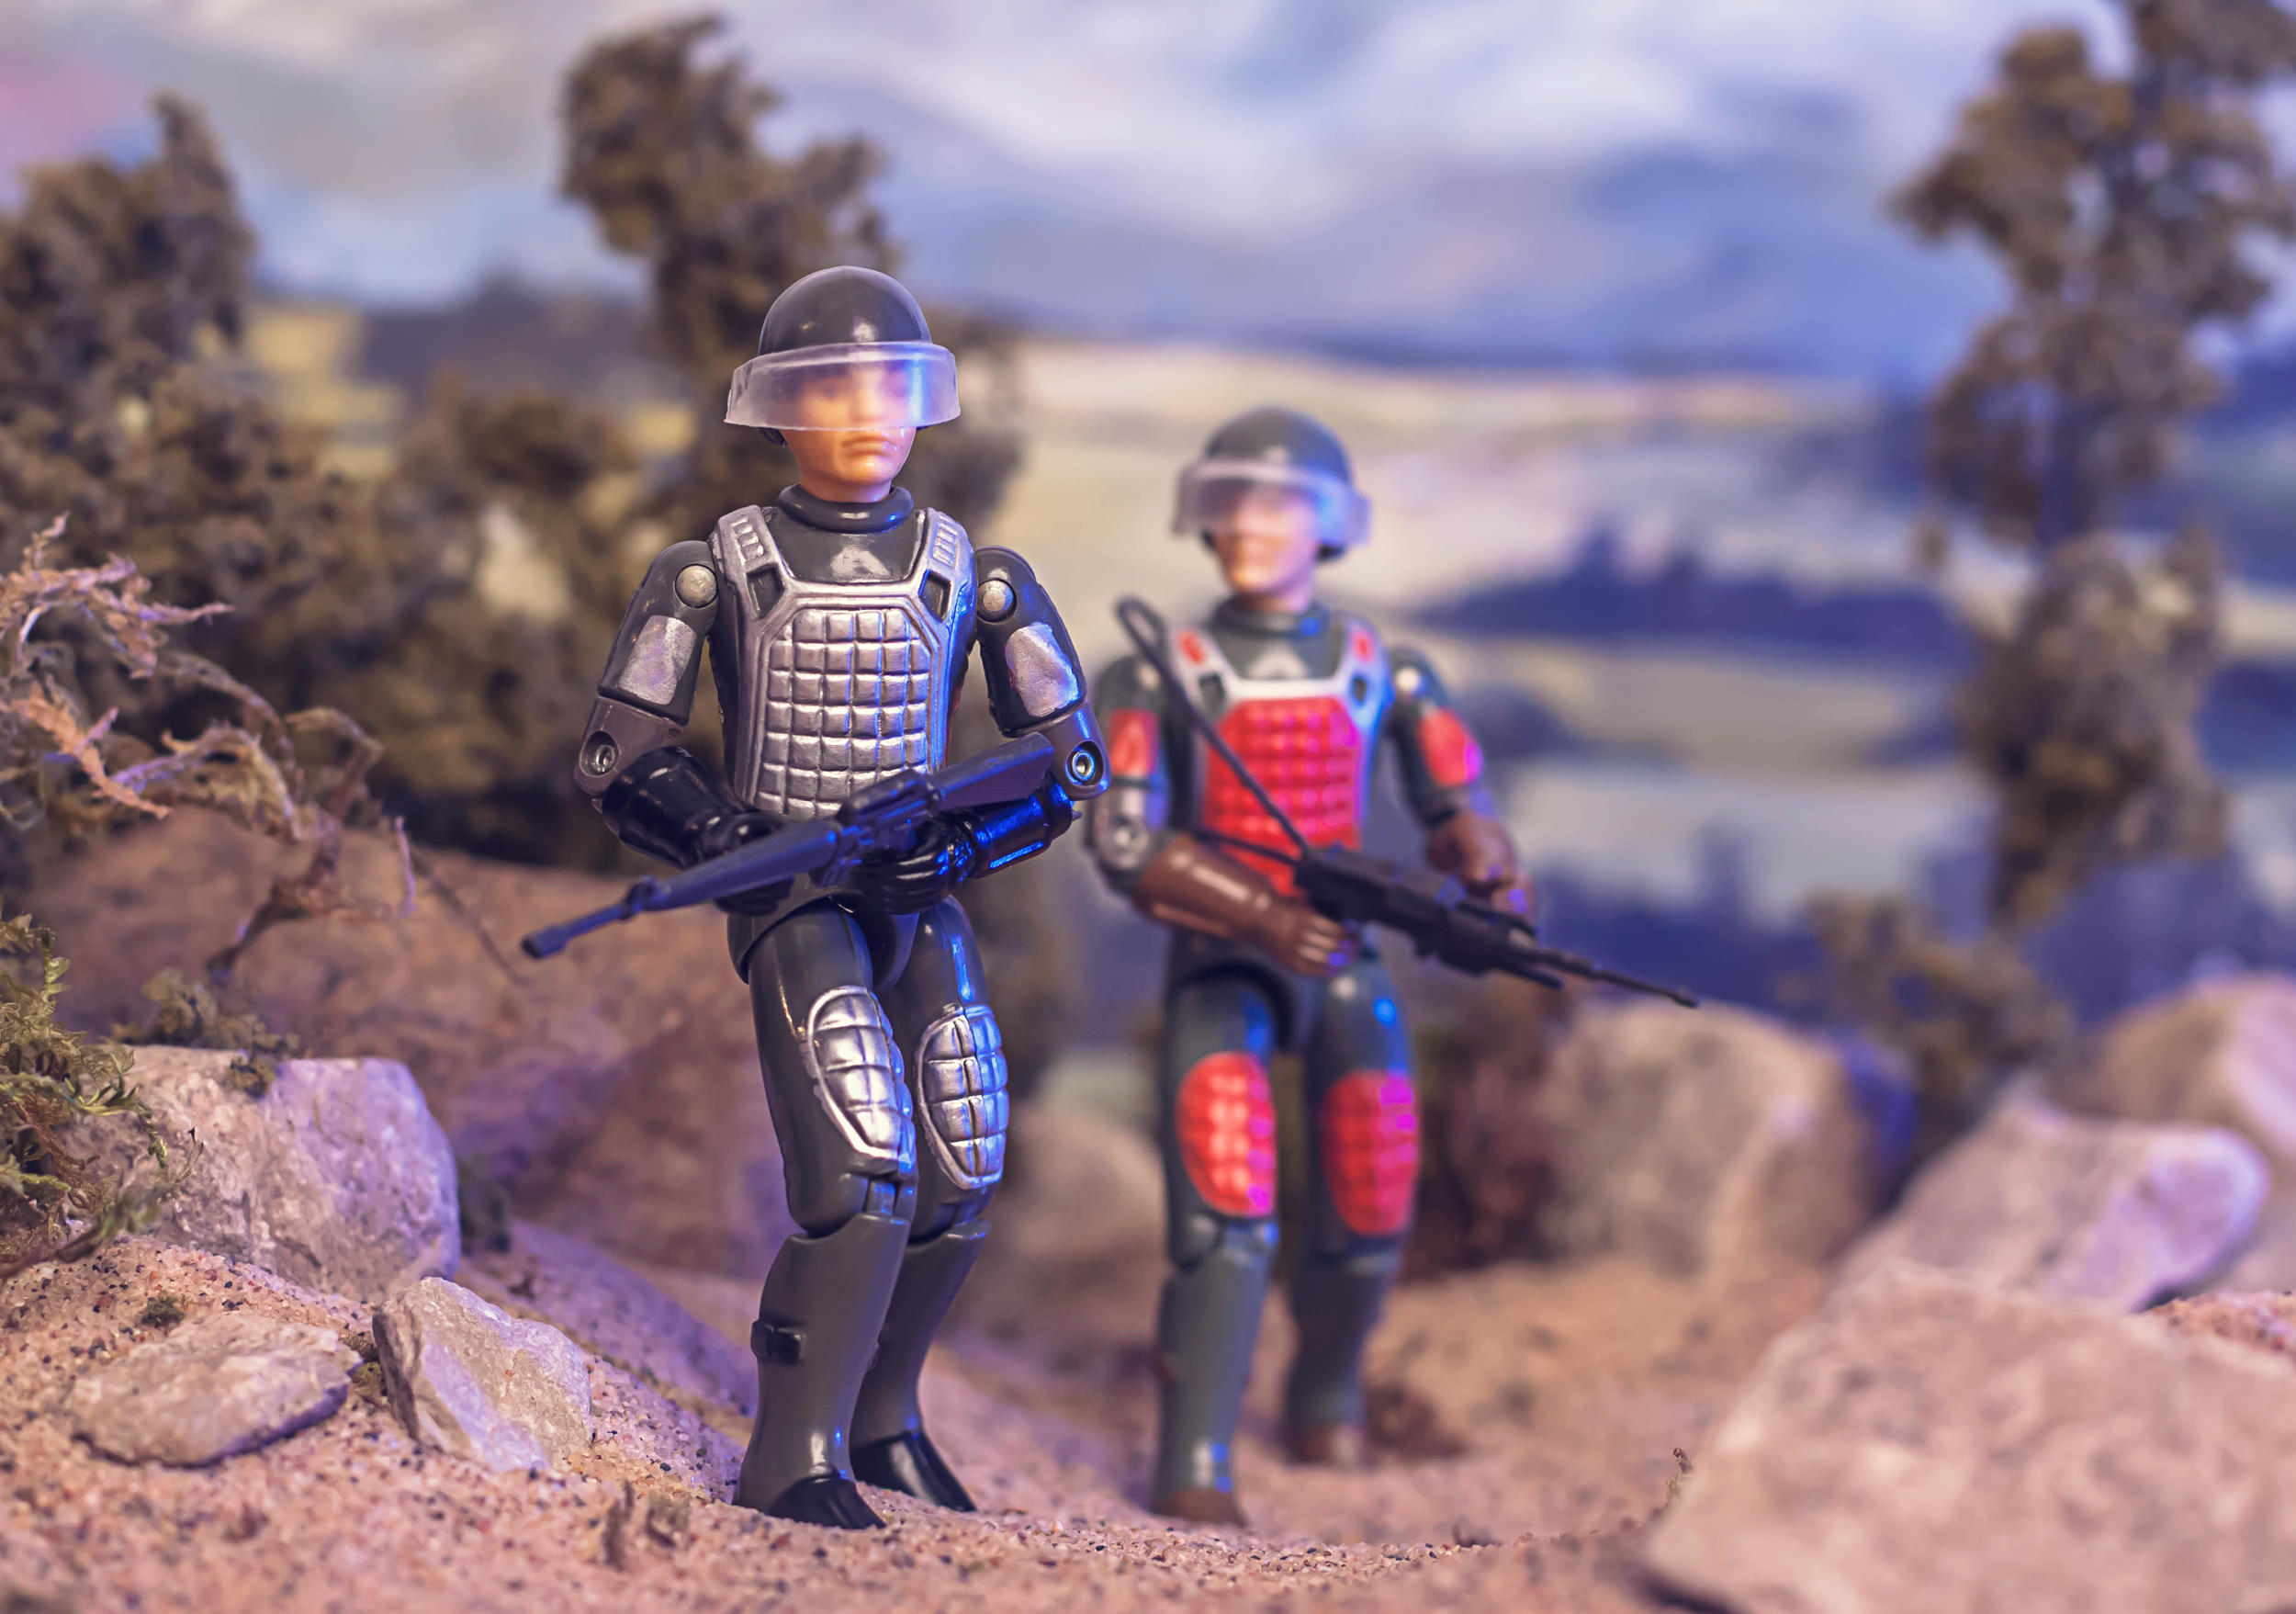 grand-slam-flash-gijoe-action-figure-toy-photography-diorama-paul-panfalone.jpg